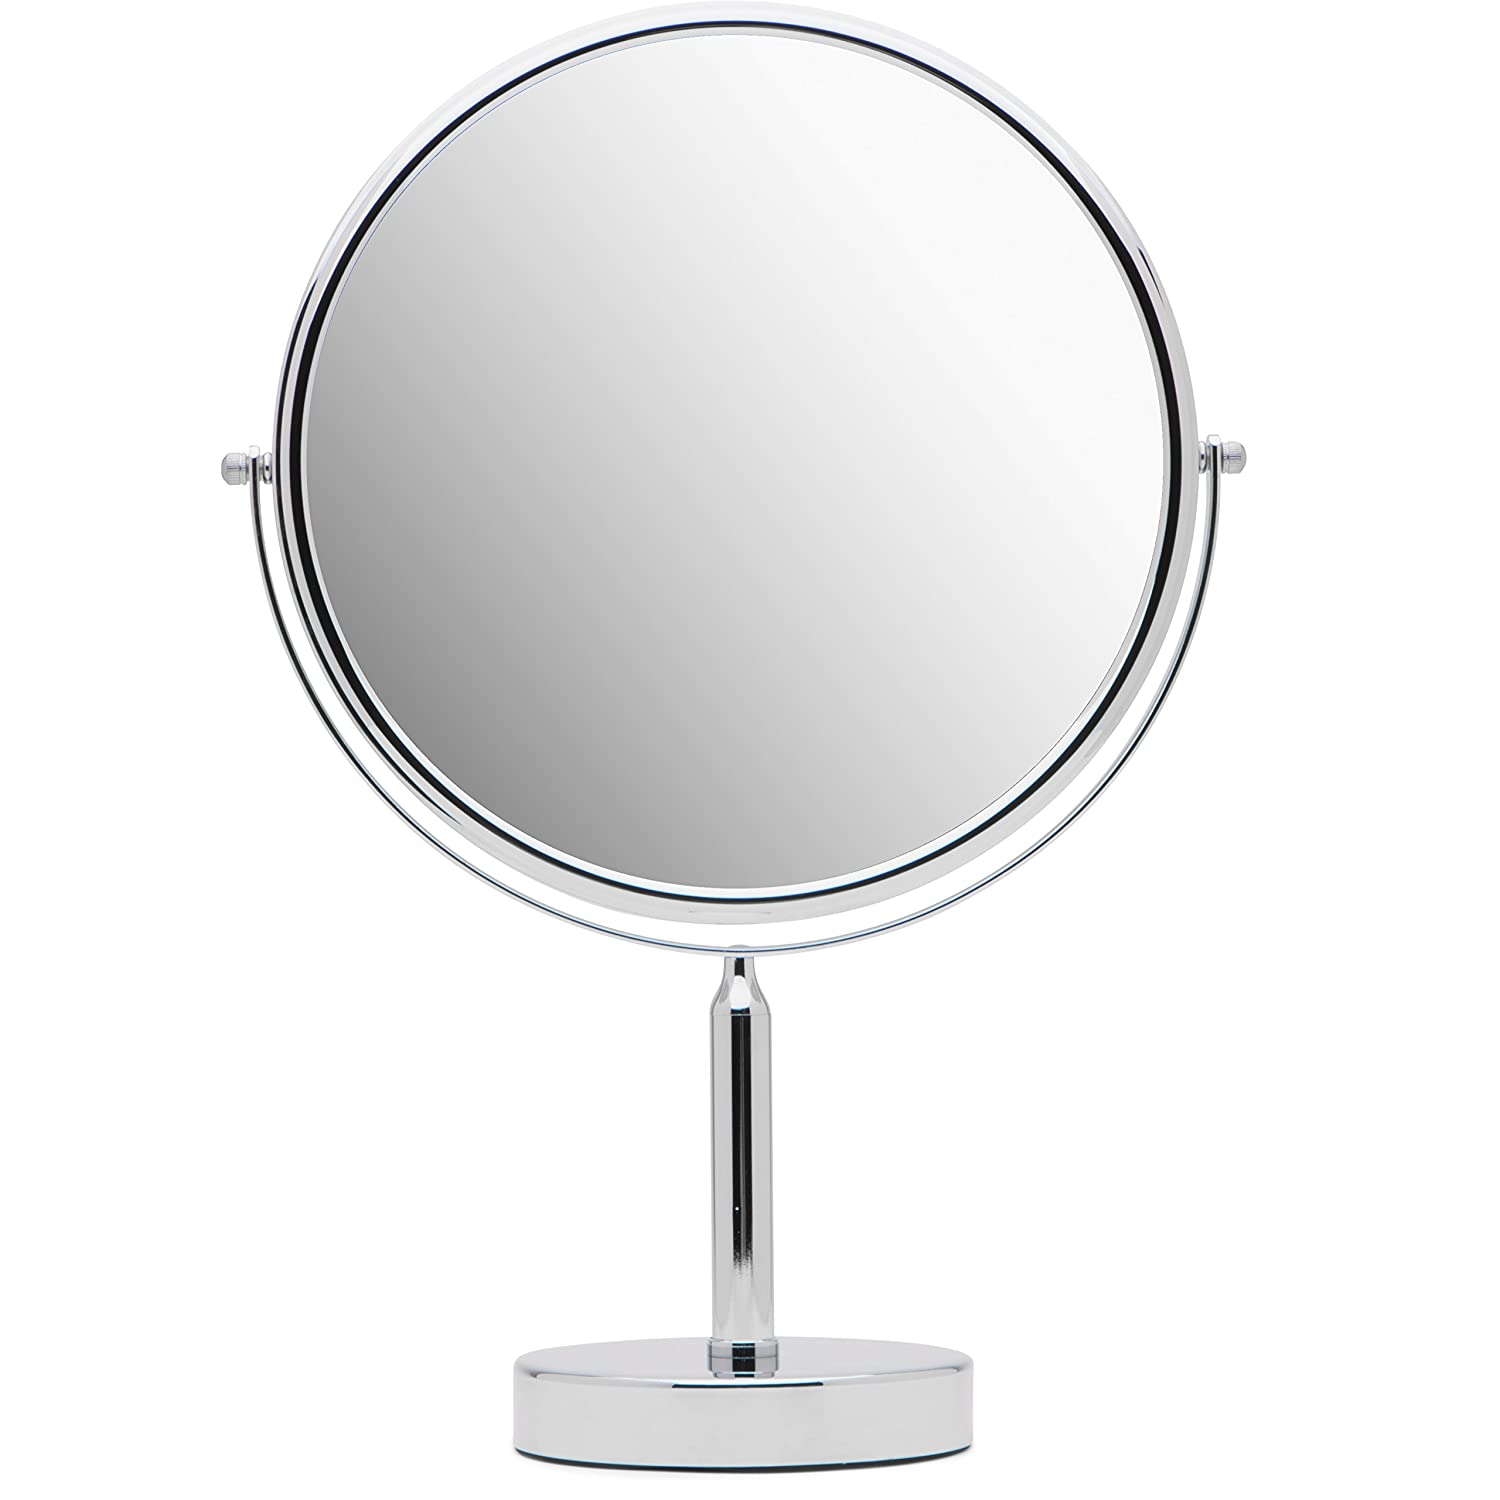 Mirrorvana XXLarge 11-Inch Massive Magnifying Makeup Mirror | Double-Sided 1X & 3X Magnification for Vanity Countertop …